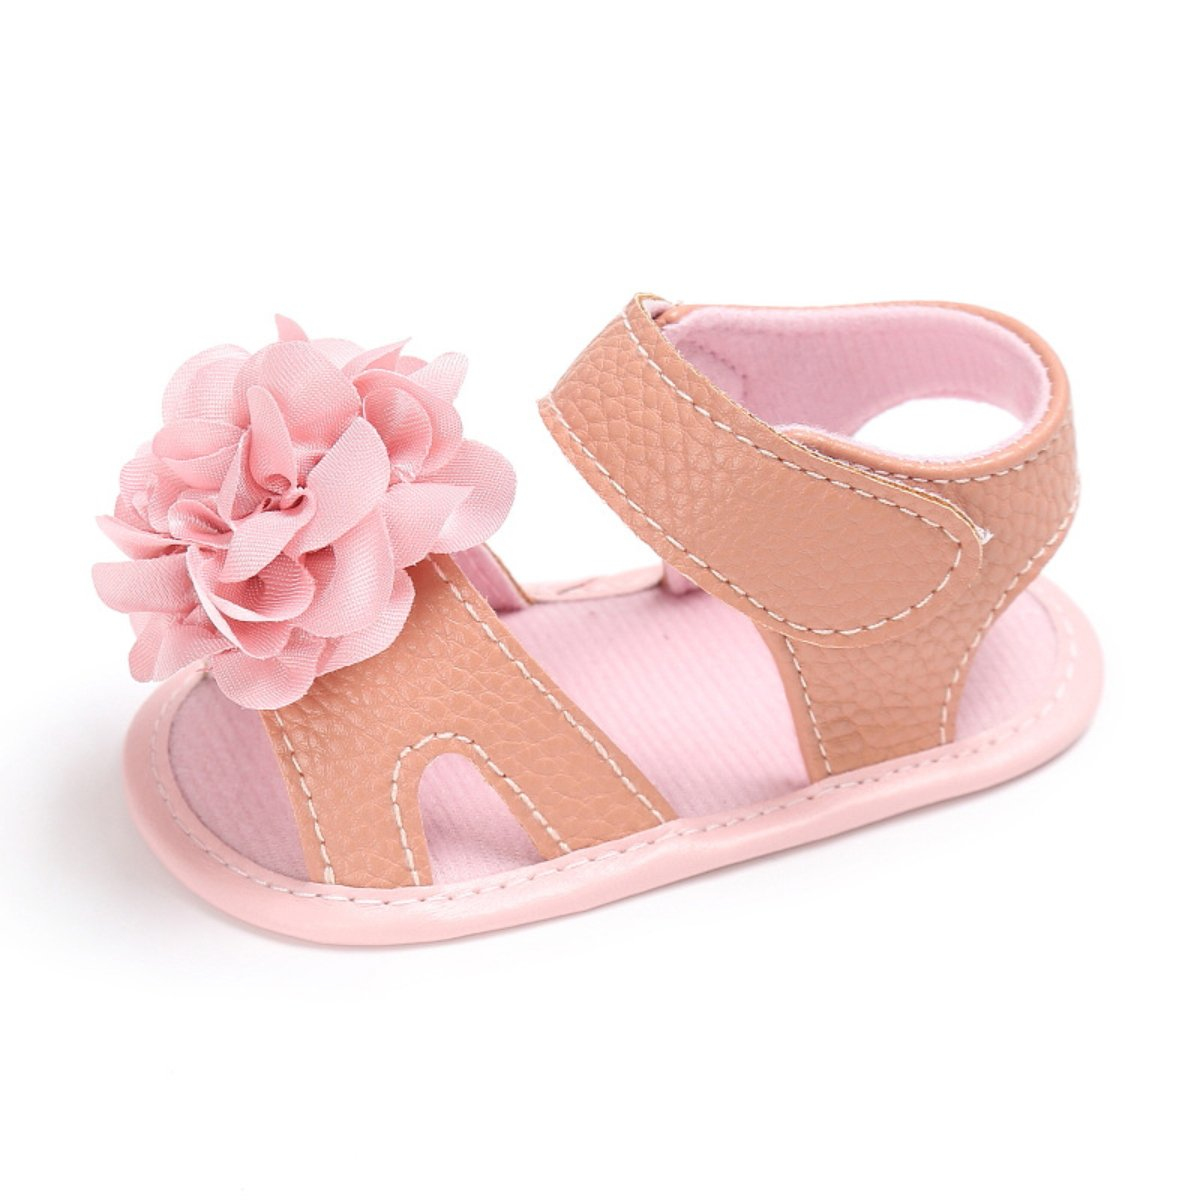 LUWU Baby Girls Flower Bowknot Princess Sandals Anti-Slip Sole Toddle Shoes